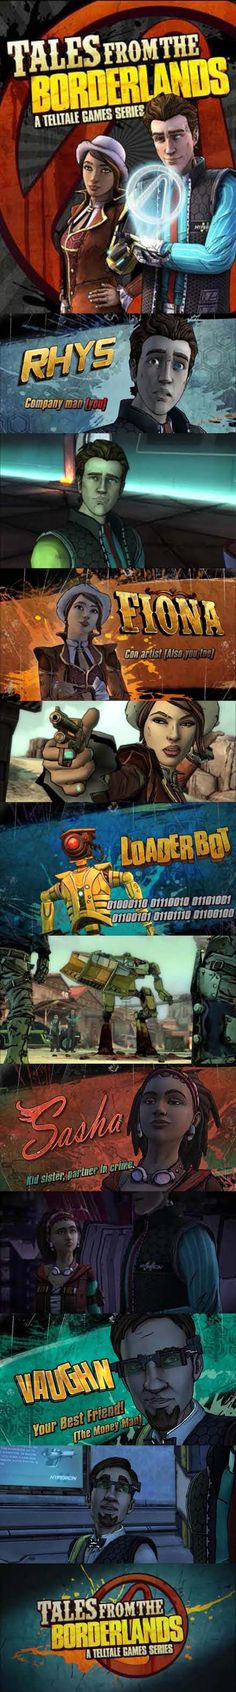 Tales from the is brilliant and uniquely Borderlands… Video Games Xbox, New Video Games, Xbox One Games, Assassin's Creed Black, Assassins Creed Black Flag, Borderlands Series, Tales From The Borderlands, Ps4, Playstation Games